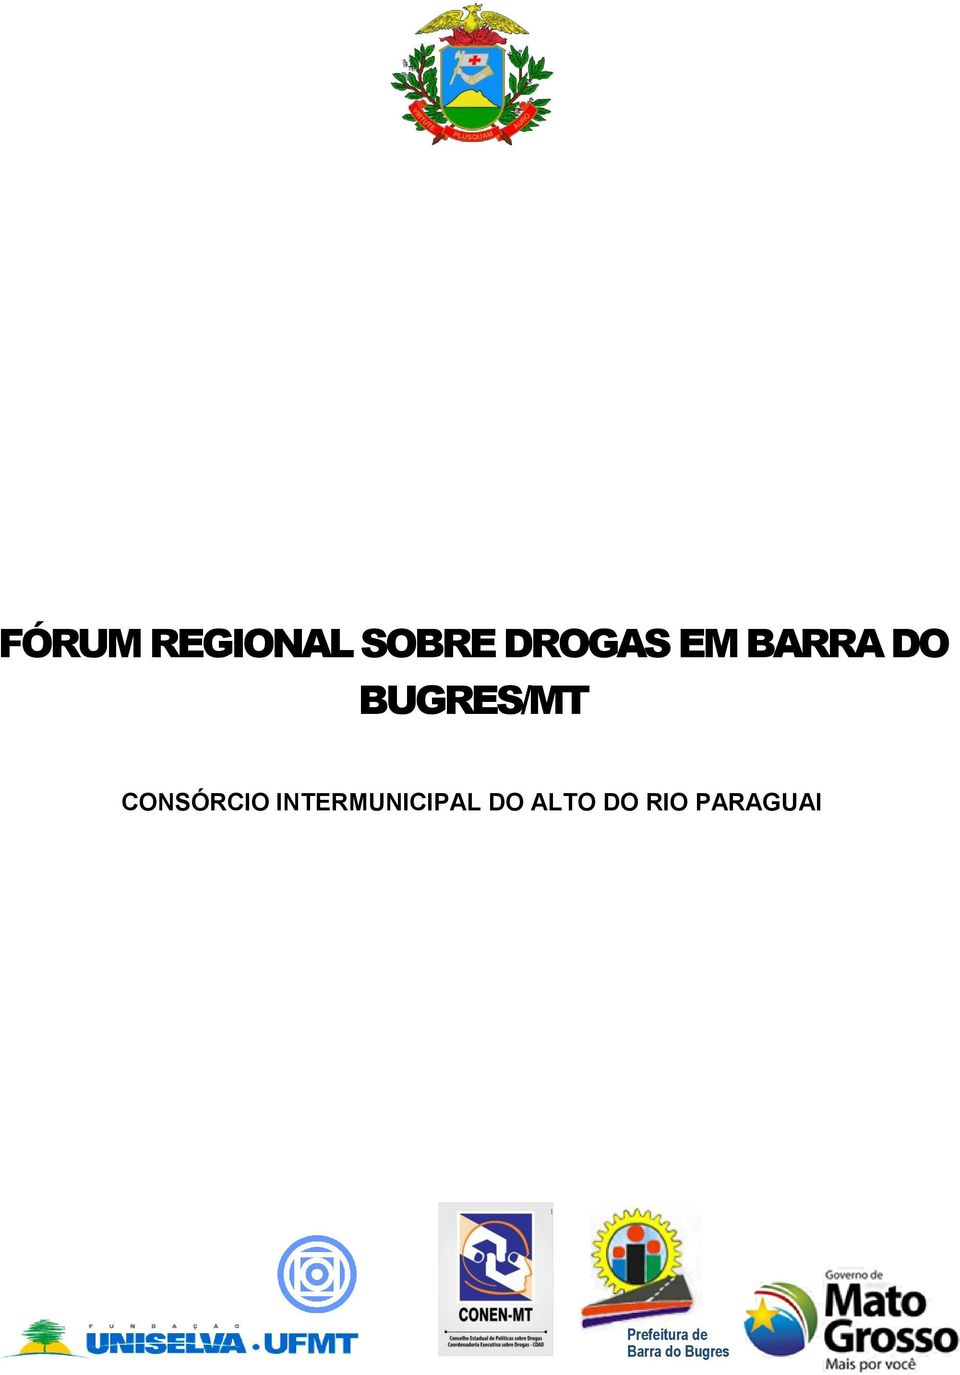 INTERMUNICIPAL DO ALTO DO RIO